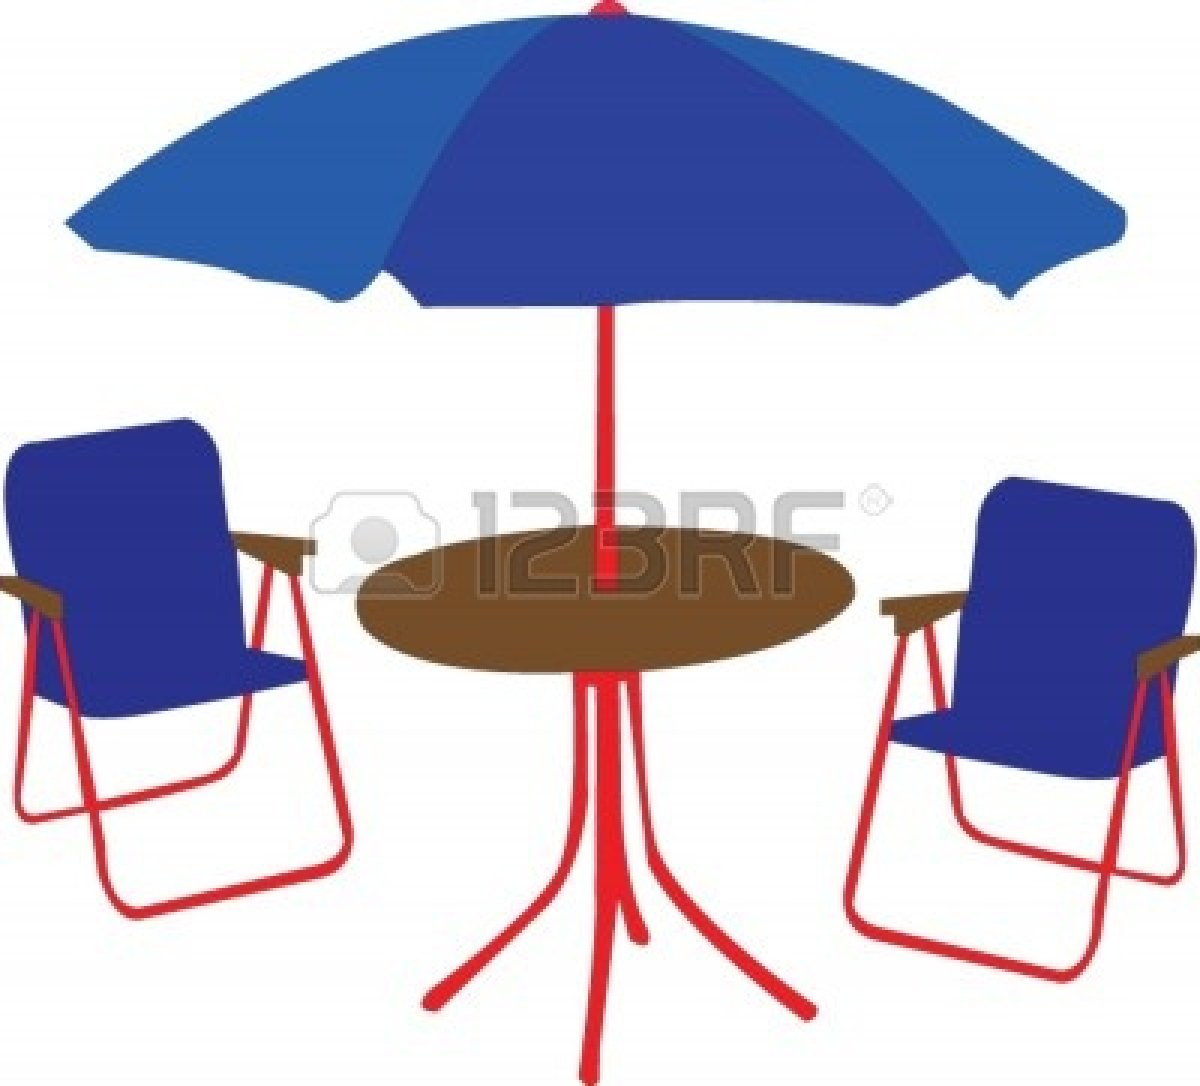 Patio Table With Umbrella Clipart.